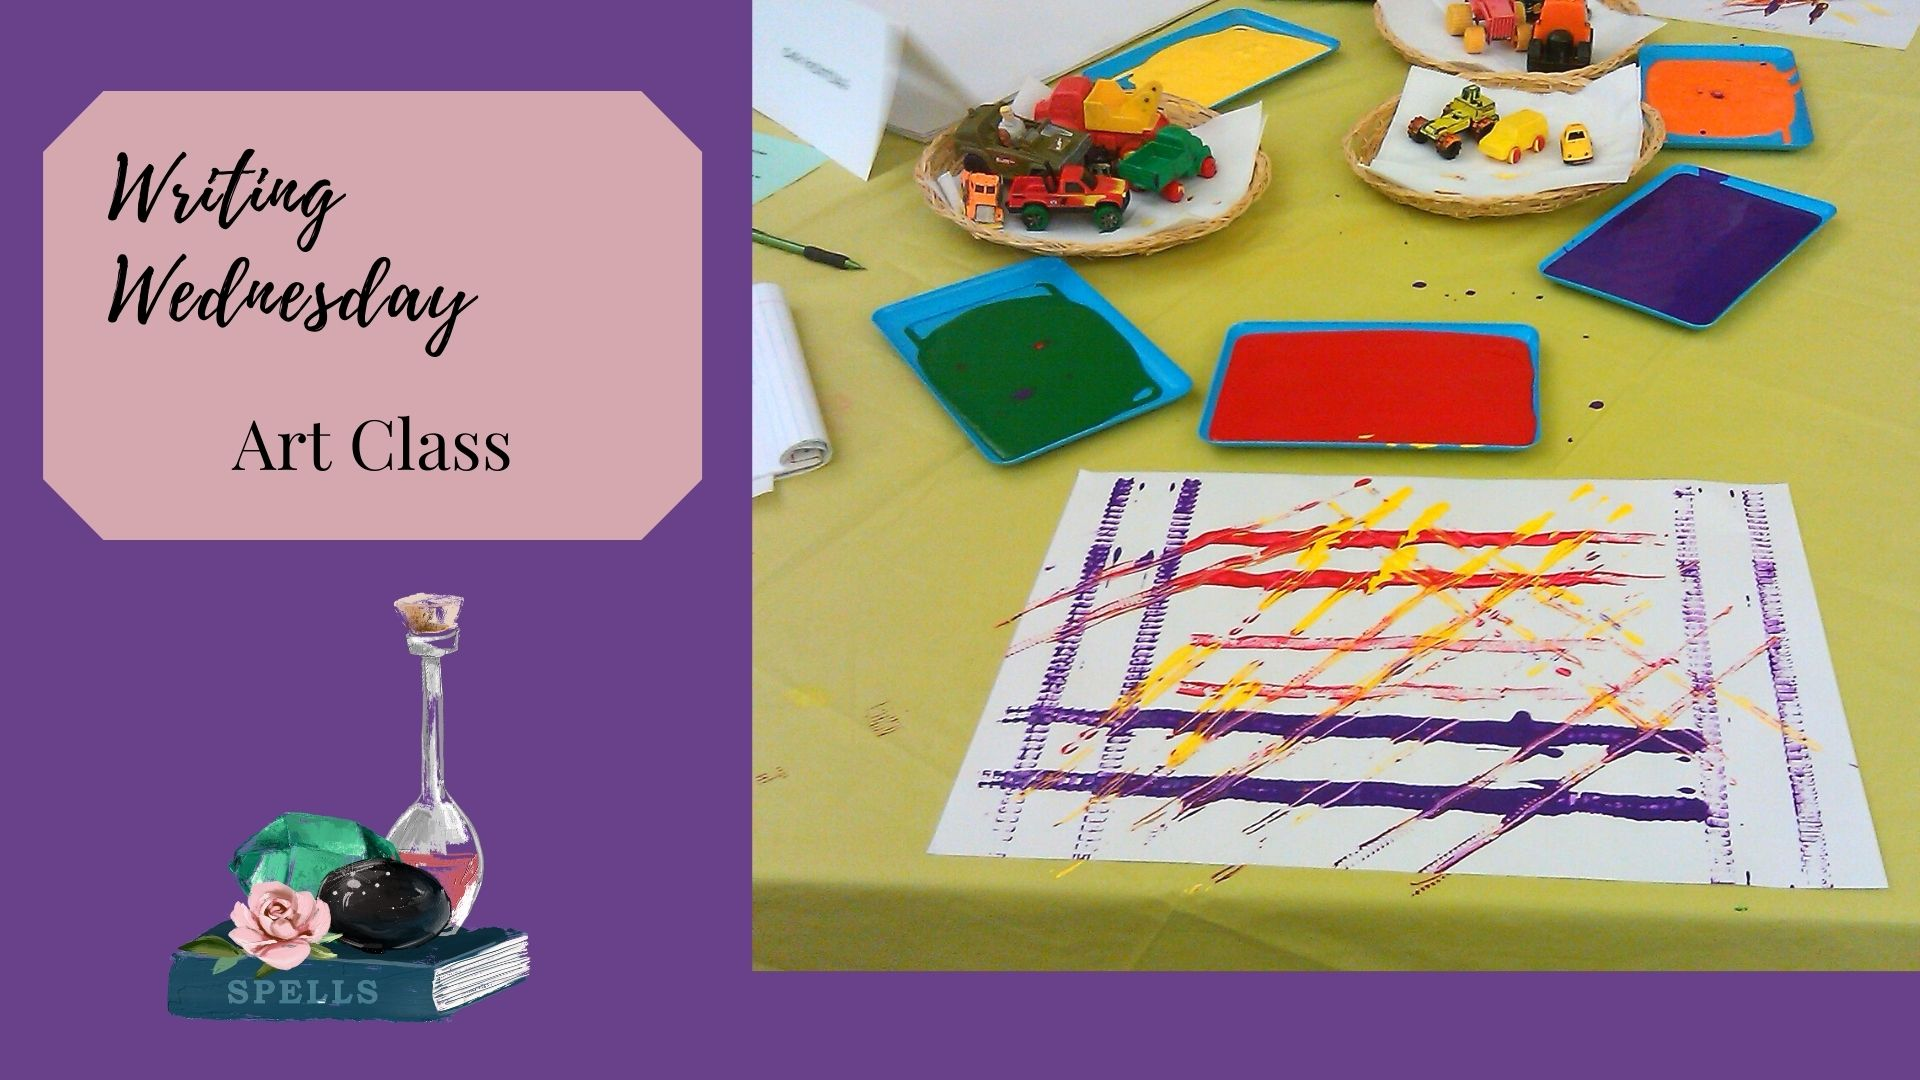 Read more about the article Writing Wednesday: Art Class